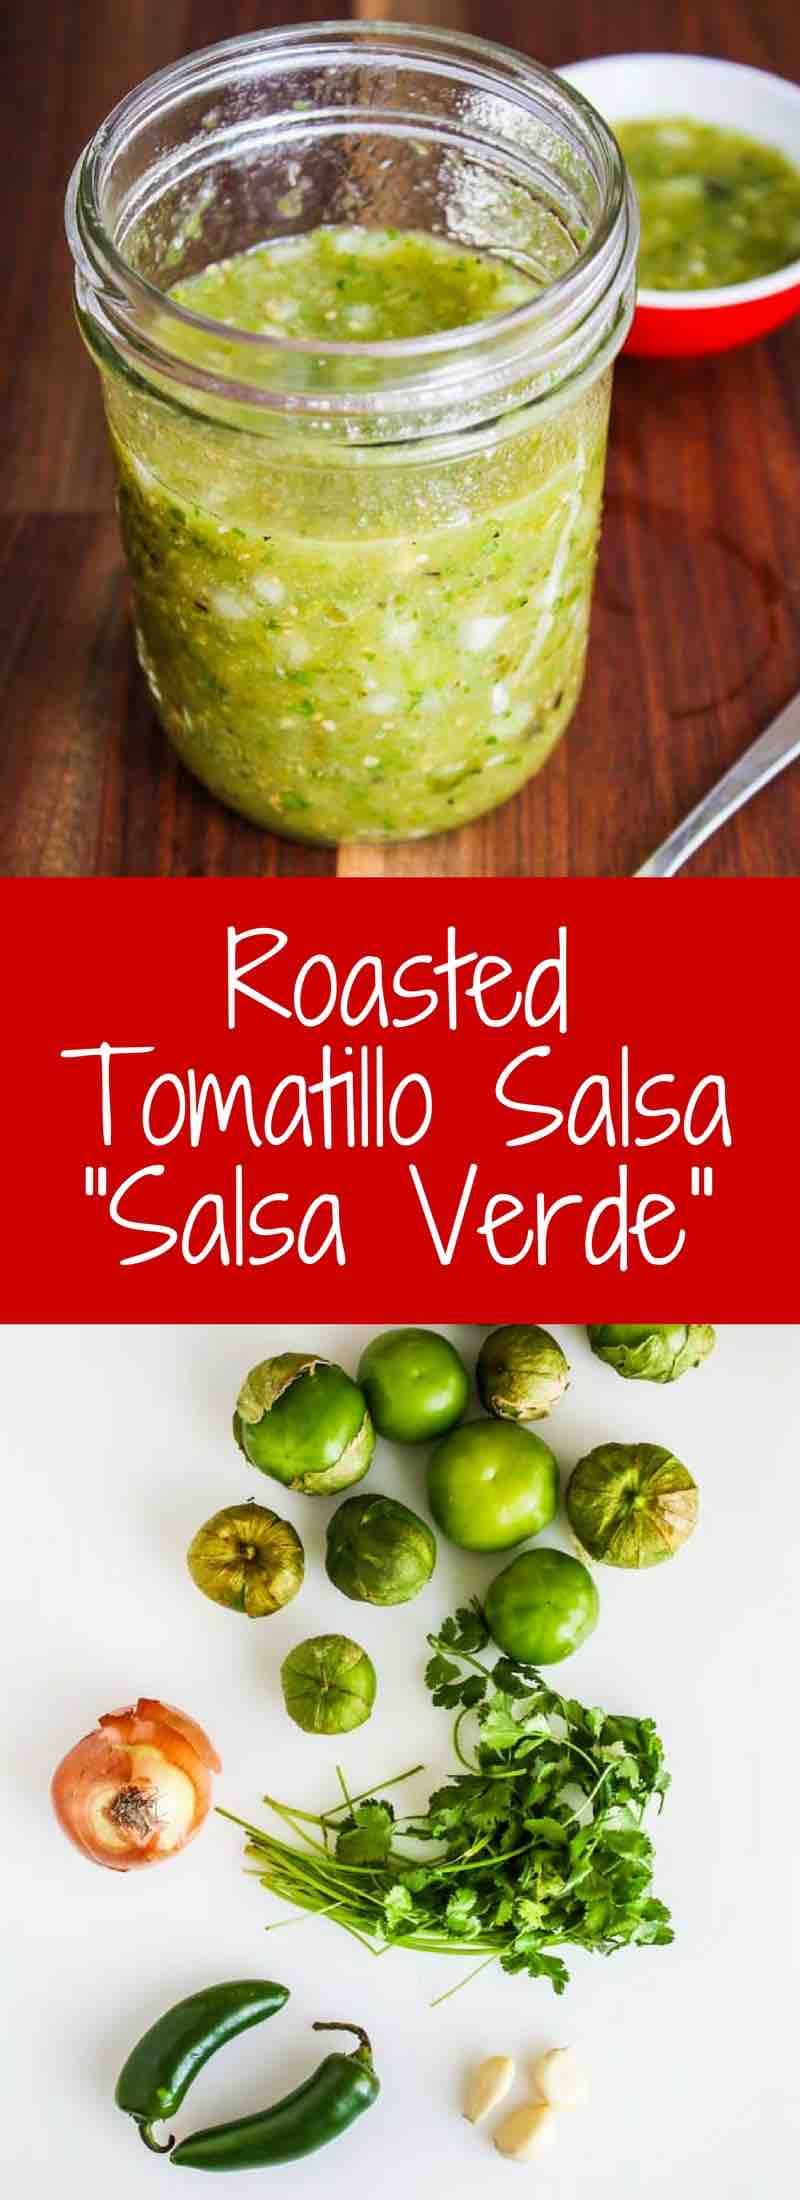 Roasted Tomatillo Salsa - this roasted version of salsa verde has some heat and smokiness. Delicious as a dip, condiment or served on top of salads